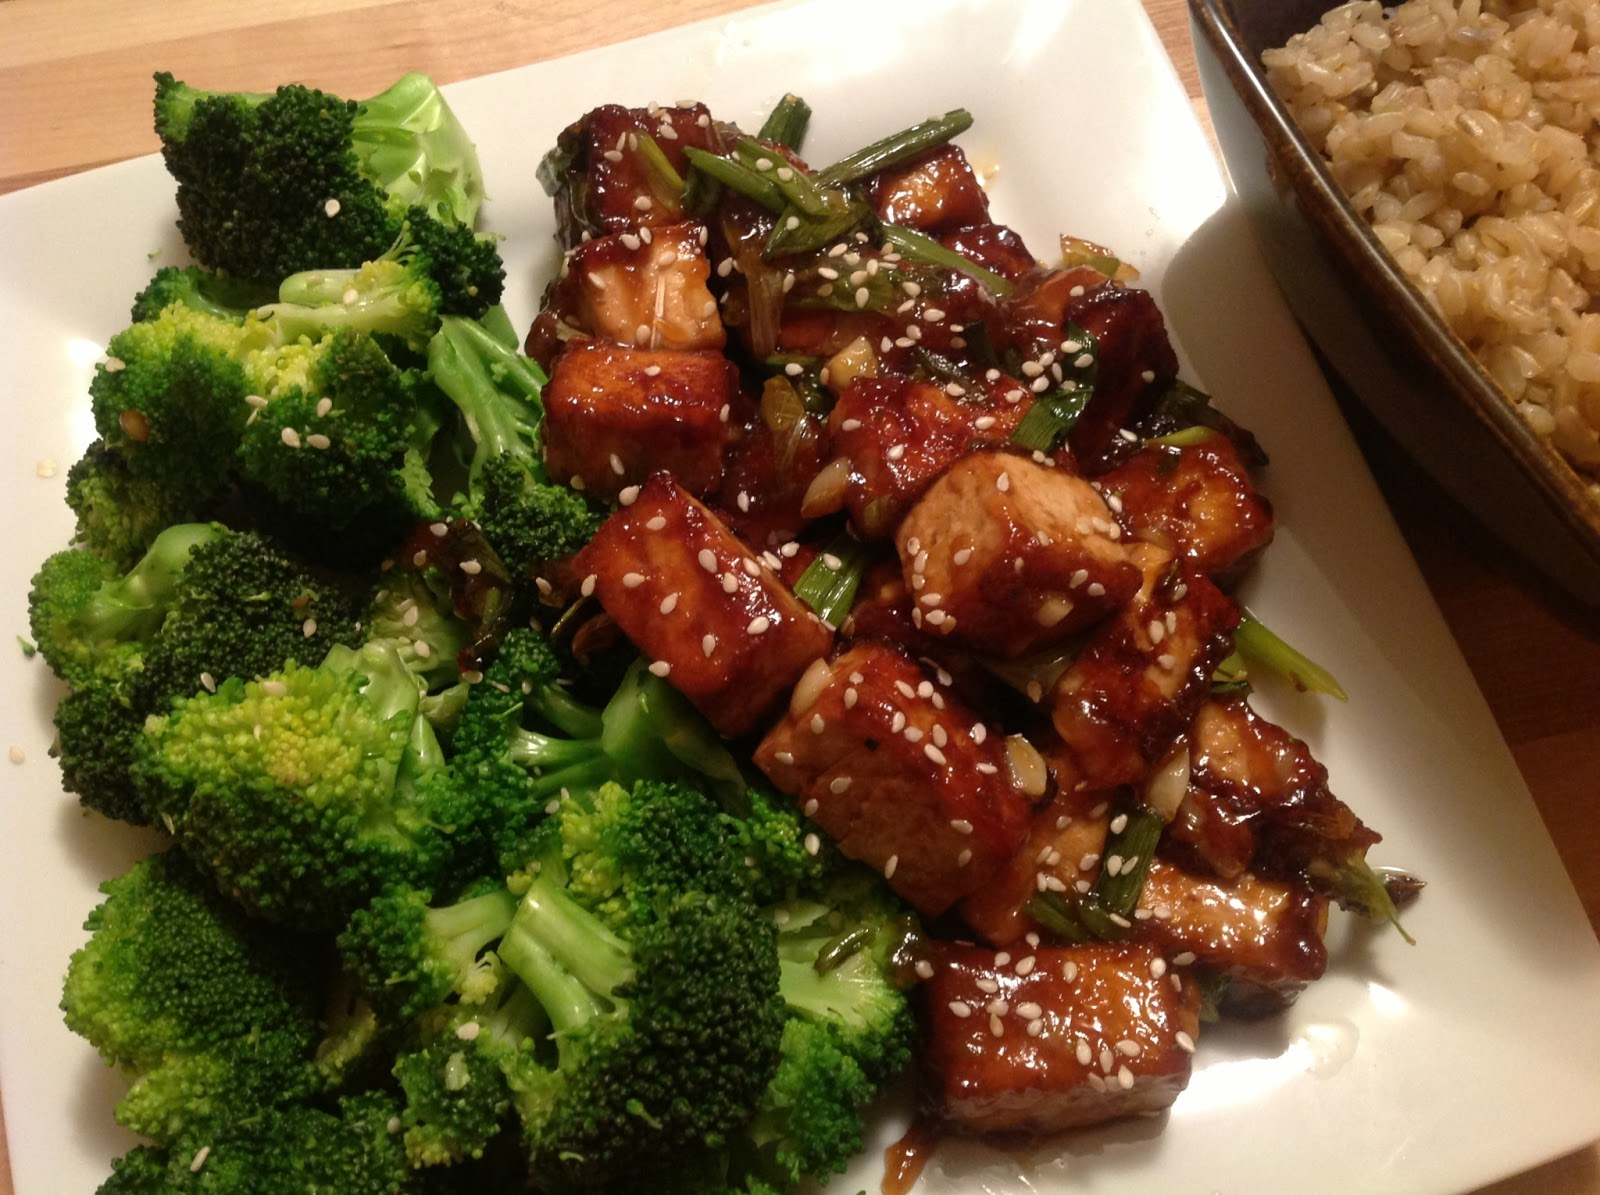 Asian fortune general tso sauce